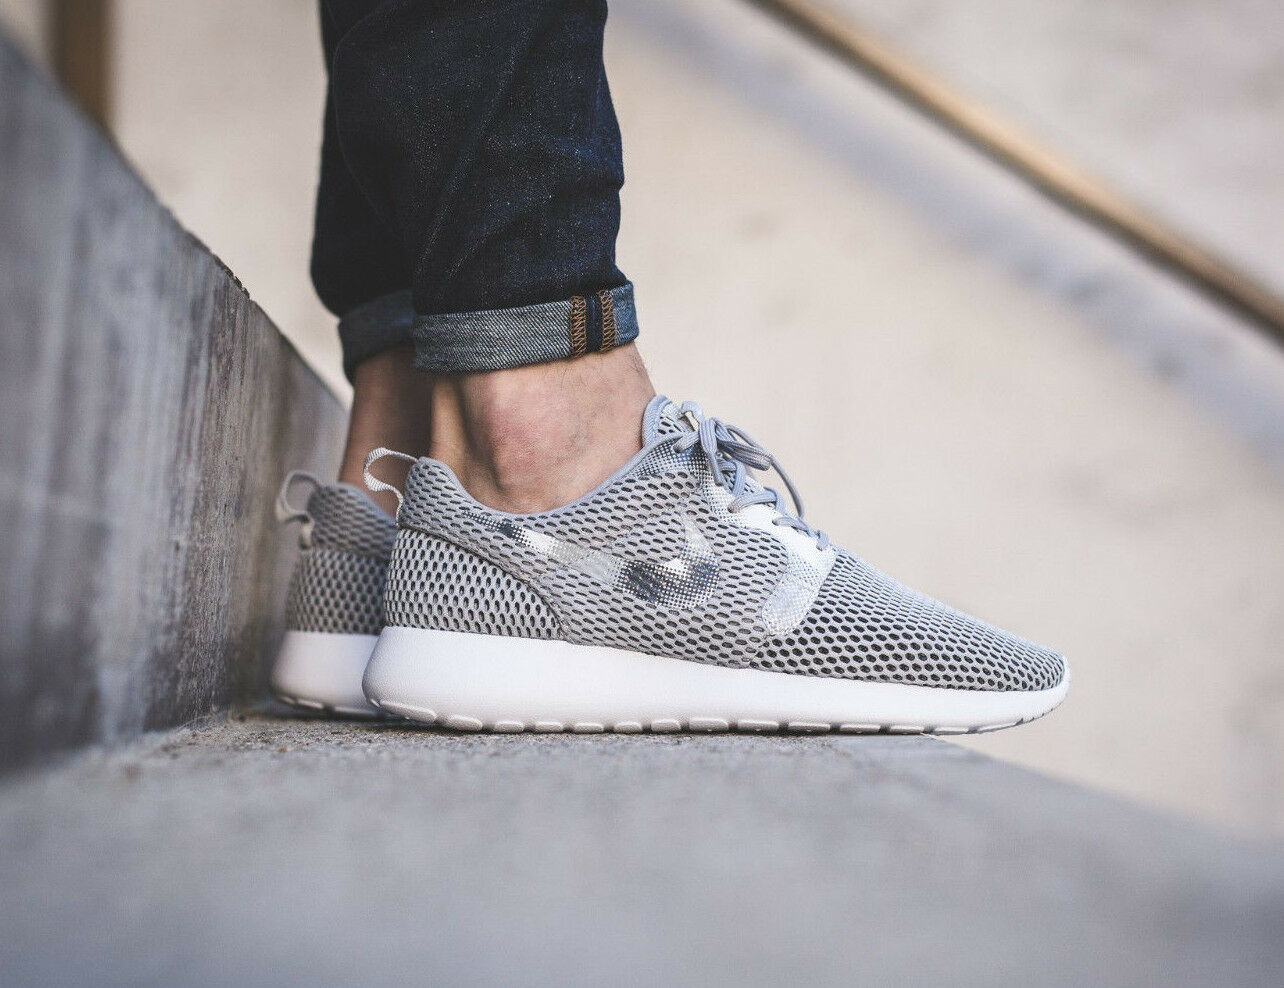 Nike roshe one hyperfuse gpx br gpx hyperfuse baskets gym fashion-uk 8 (eu 42.5) wolf Gris bc1dfd